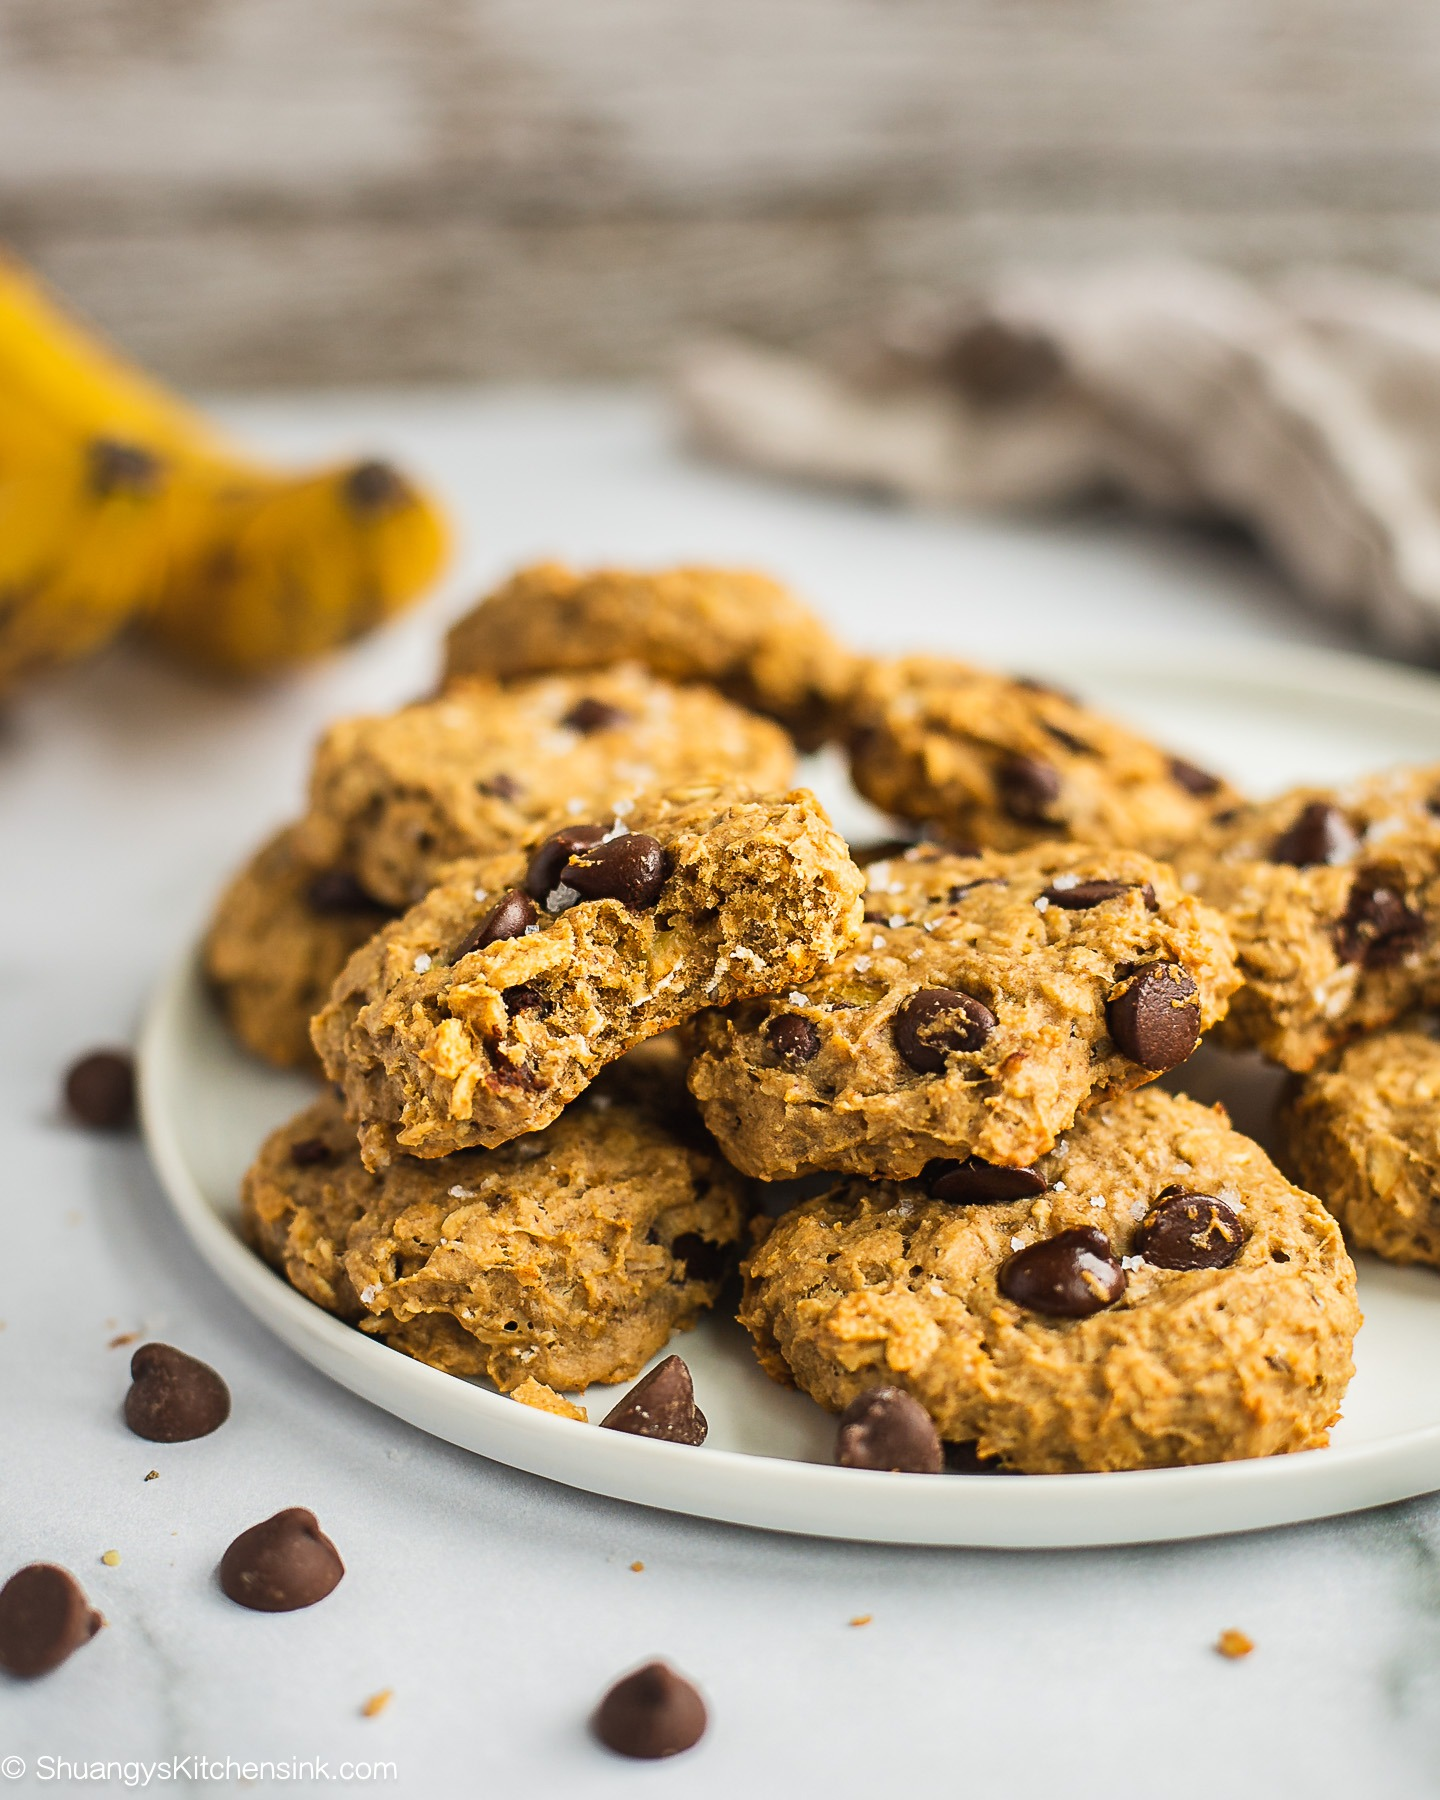 A plate of soft cookies made from oats and fruits. In the background there are bananas and chocolate chips